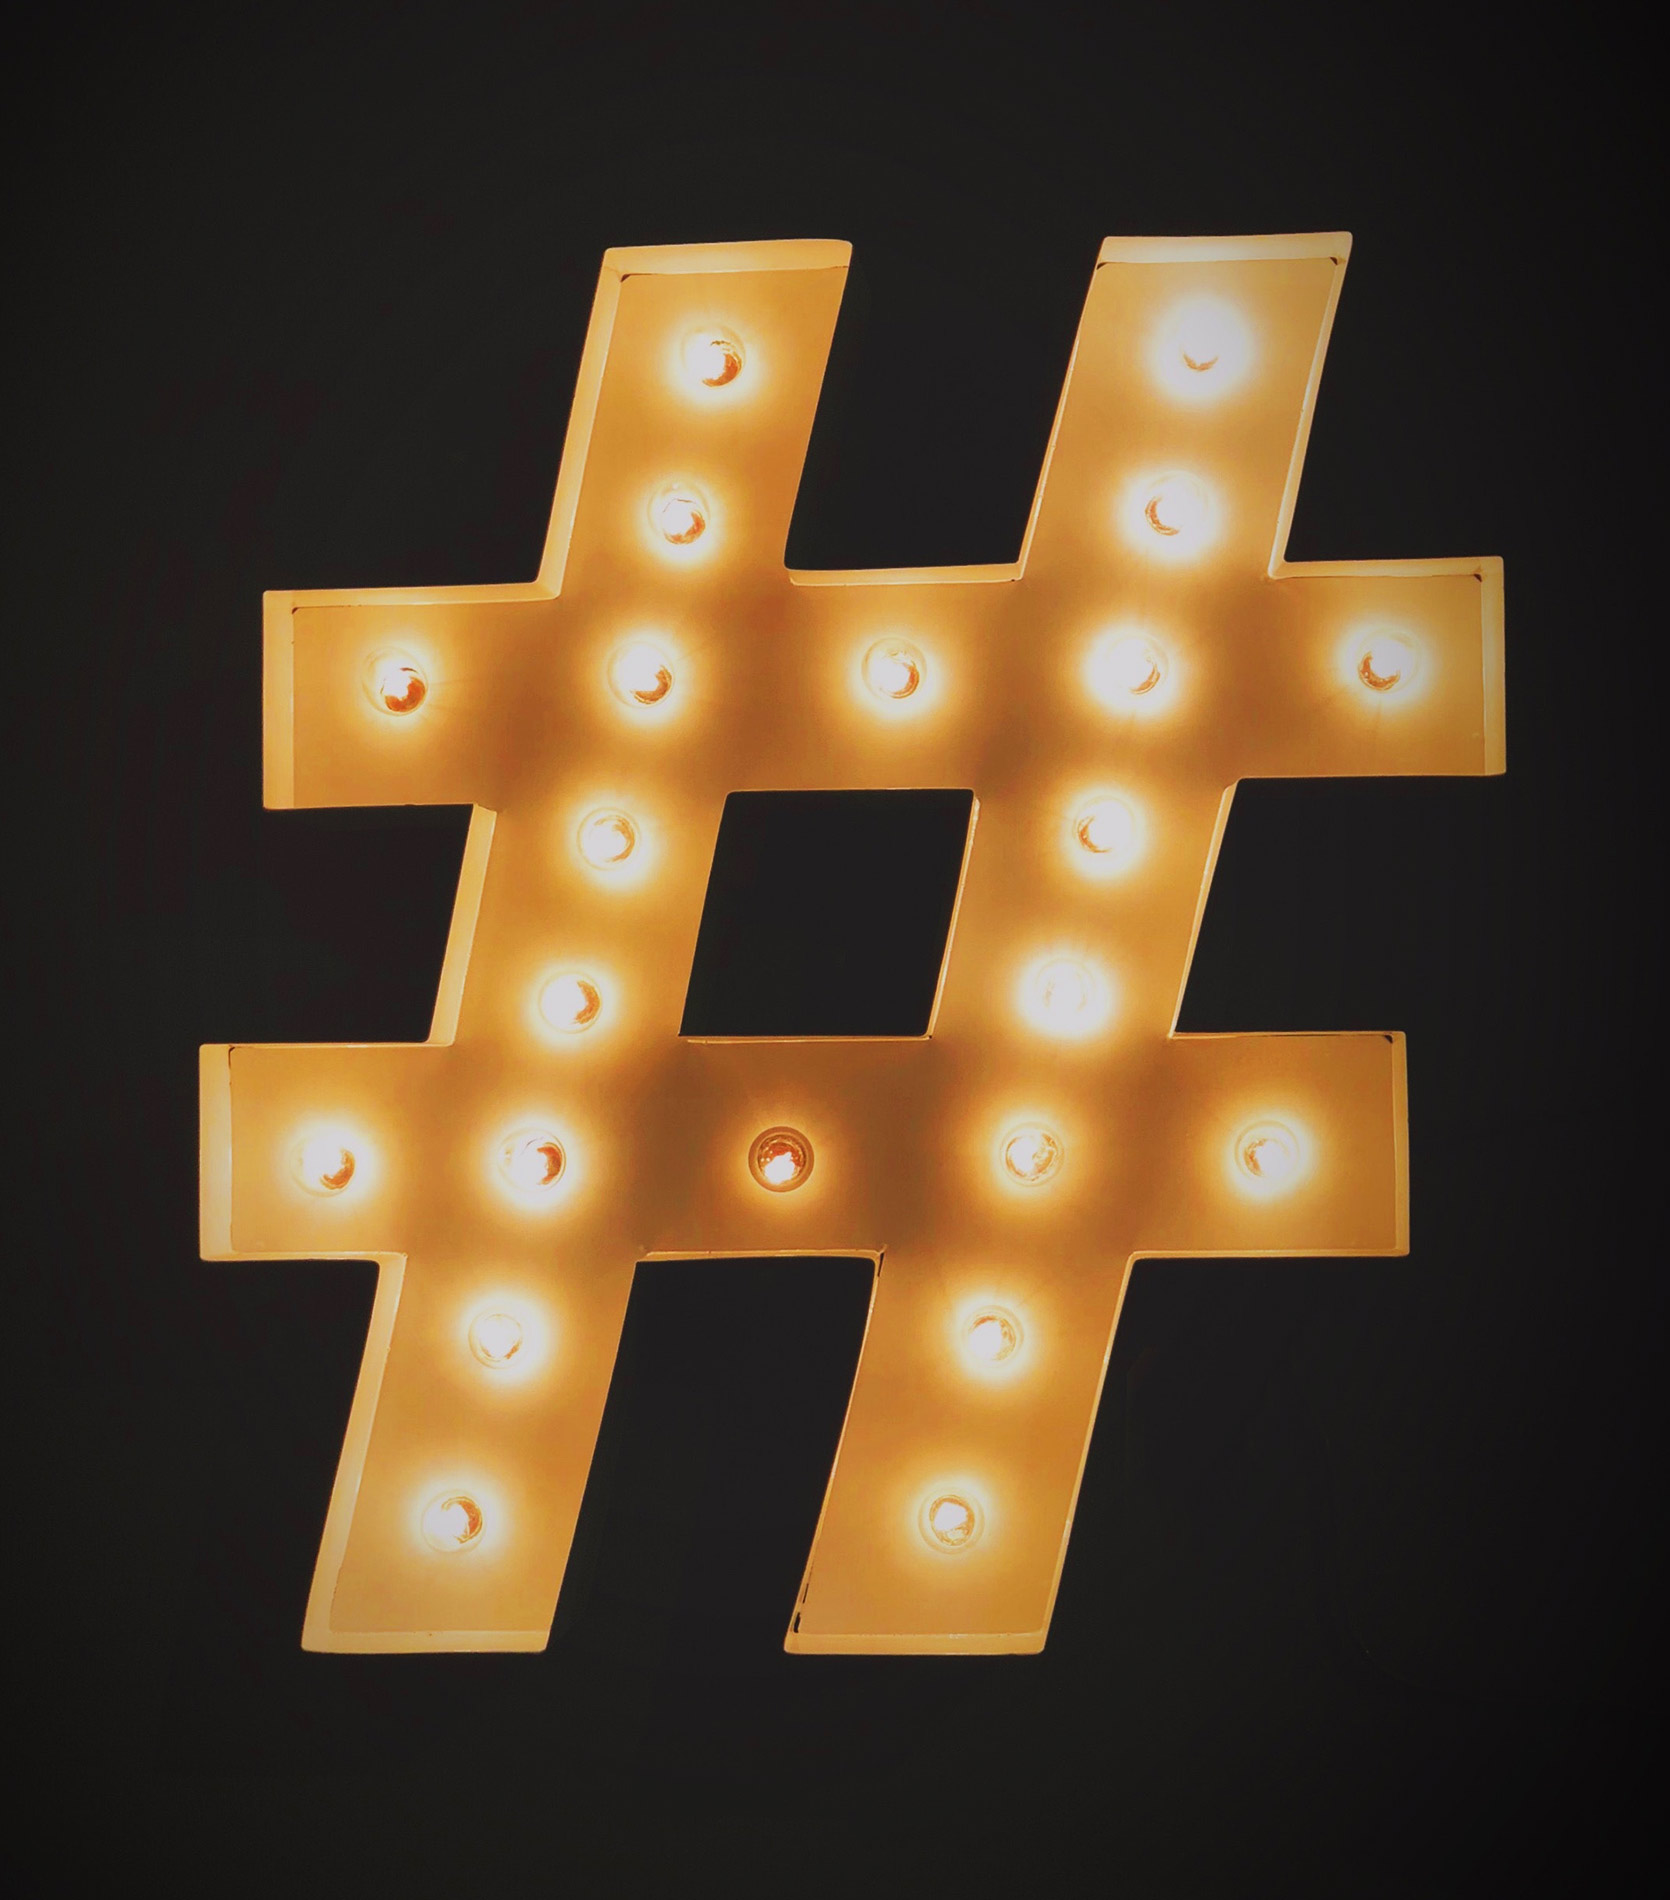 #Hashtagging is a simple yet powerful hack to get your content indexed.